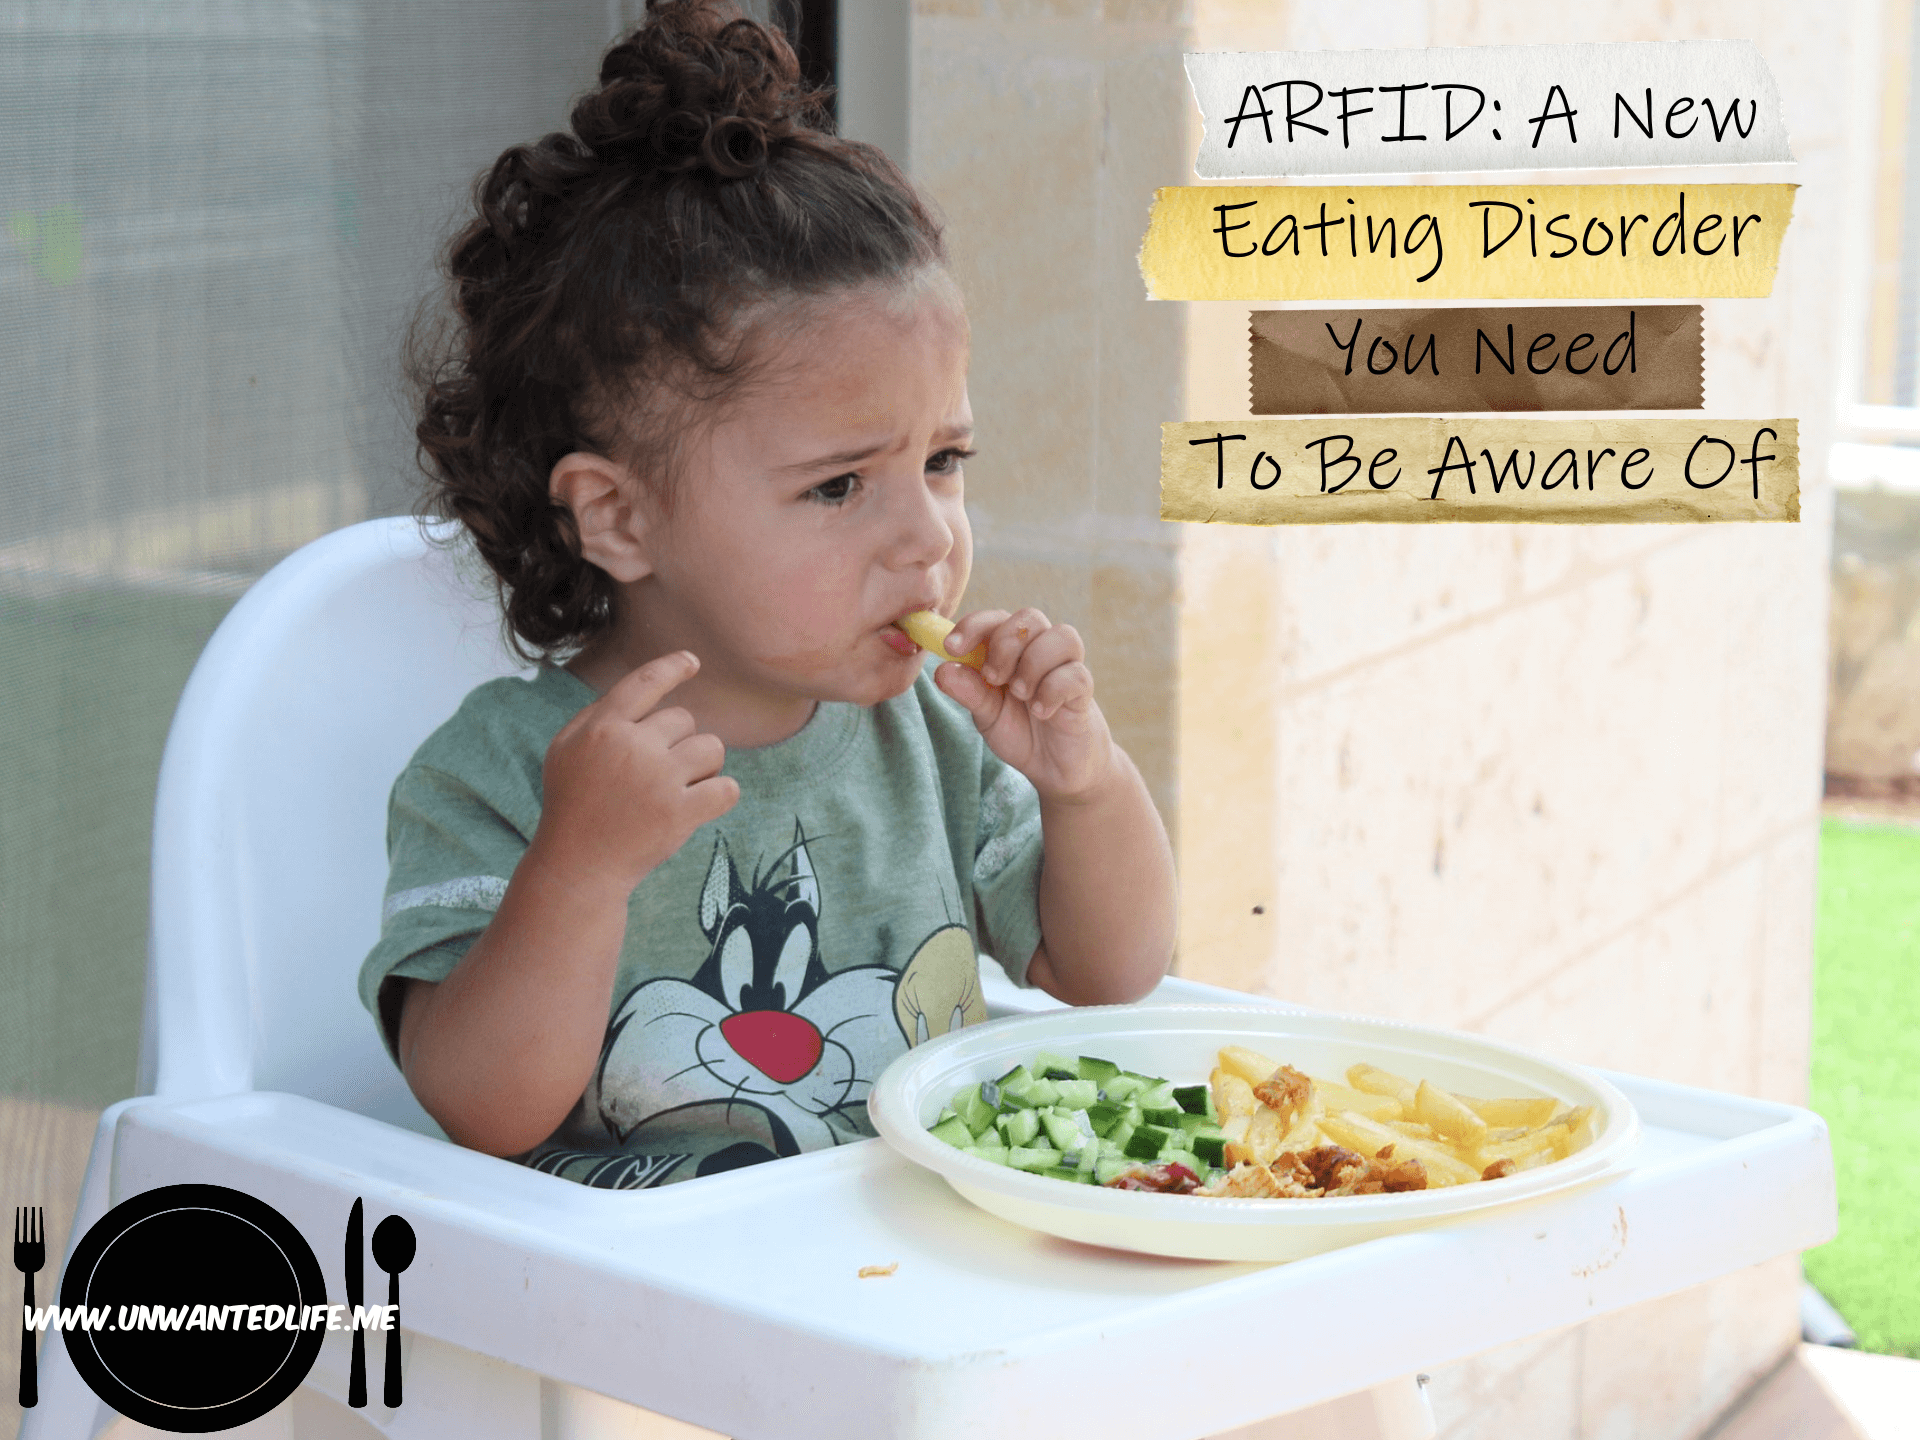 A photo of a baby in a Disney T-shirt sitting in a highchair eating pasta and cucumber with the article title - ARFID: A New Eating Disorder You Need To Be Aware Of - in the top right corner